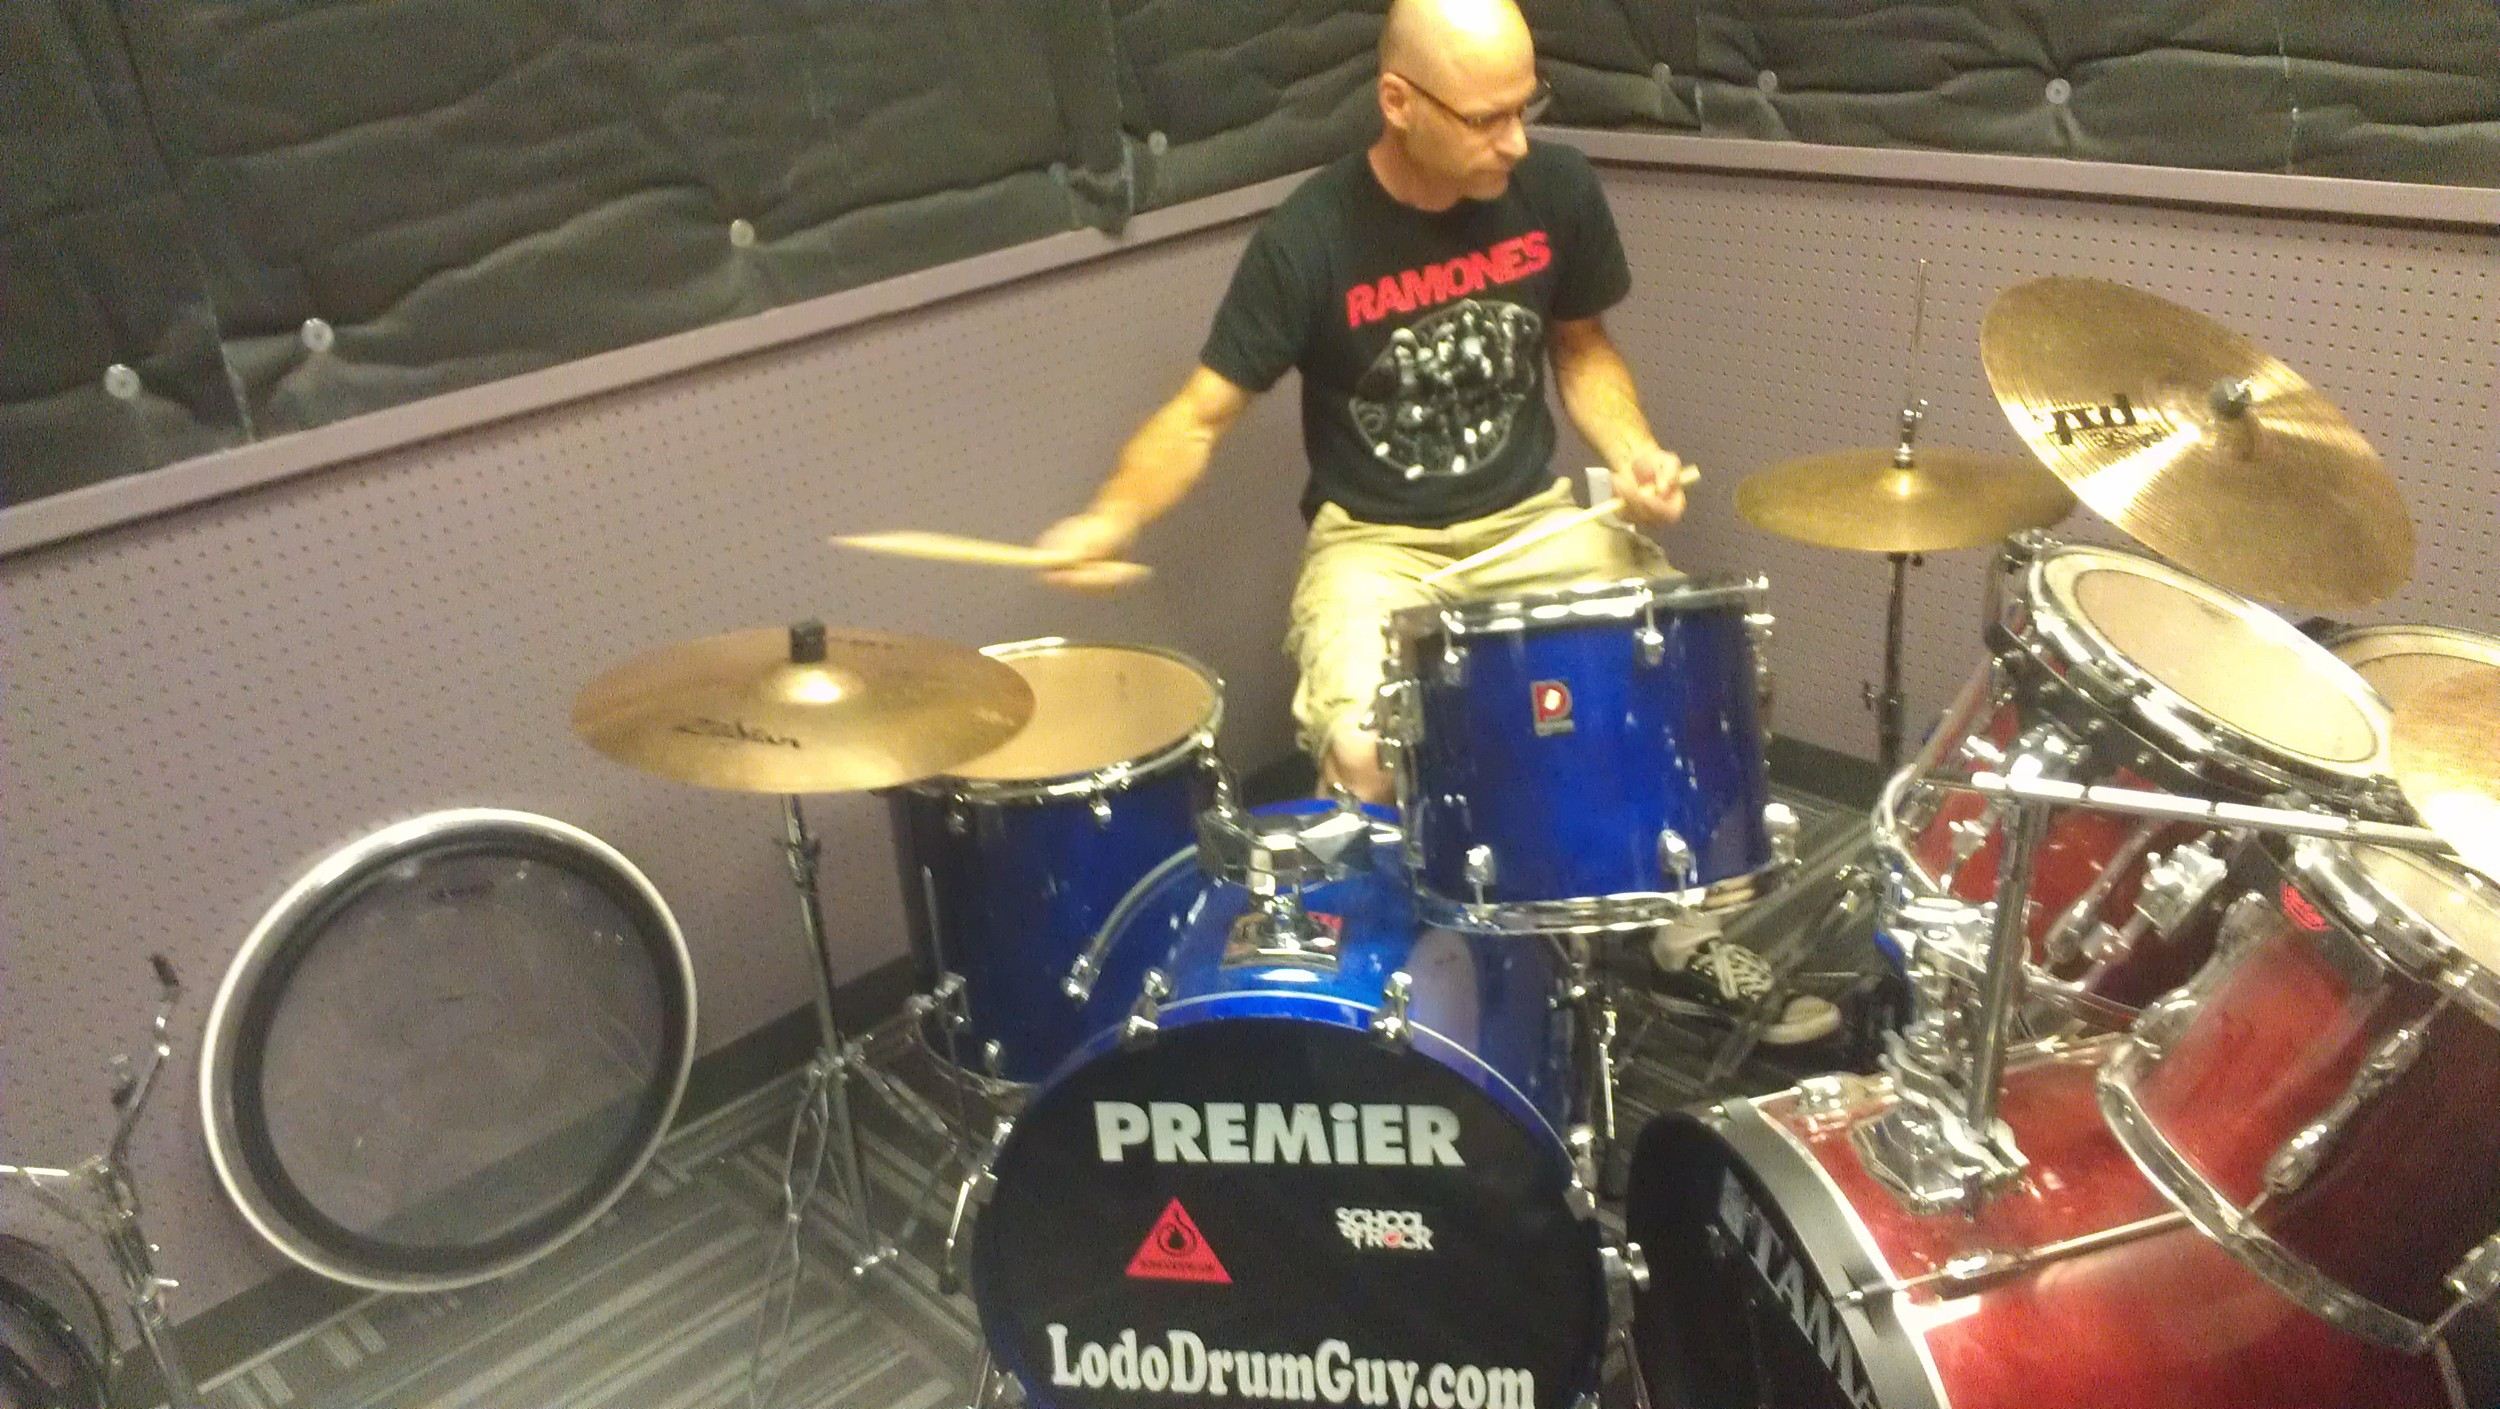 Chris Soucy, Mountain Regional Manager, test driving School of Rock's new house drum kit.